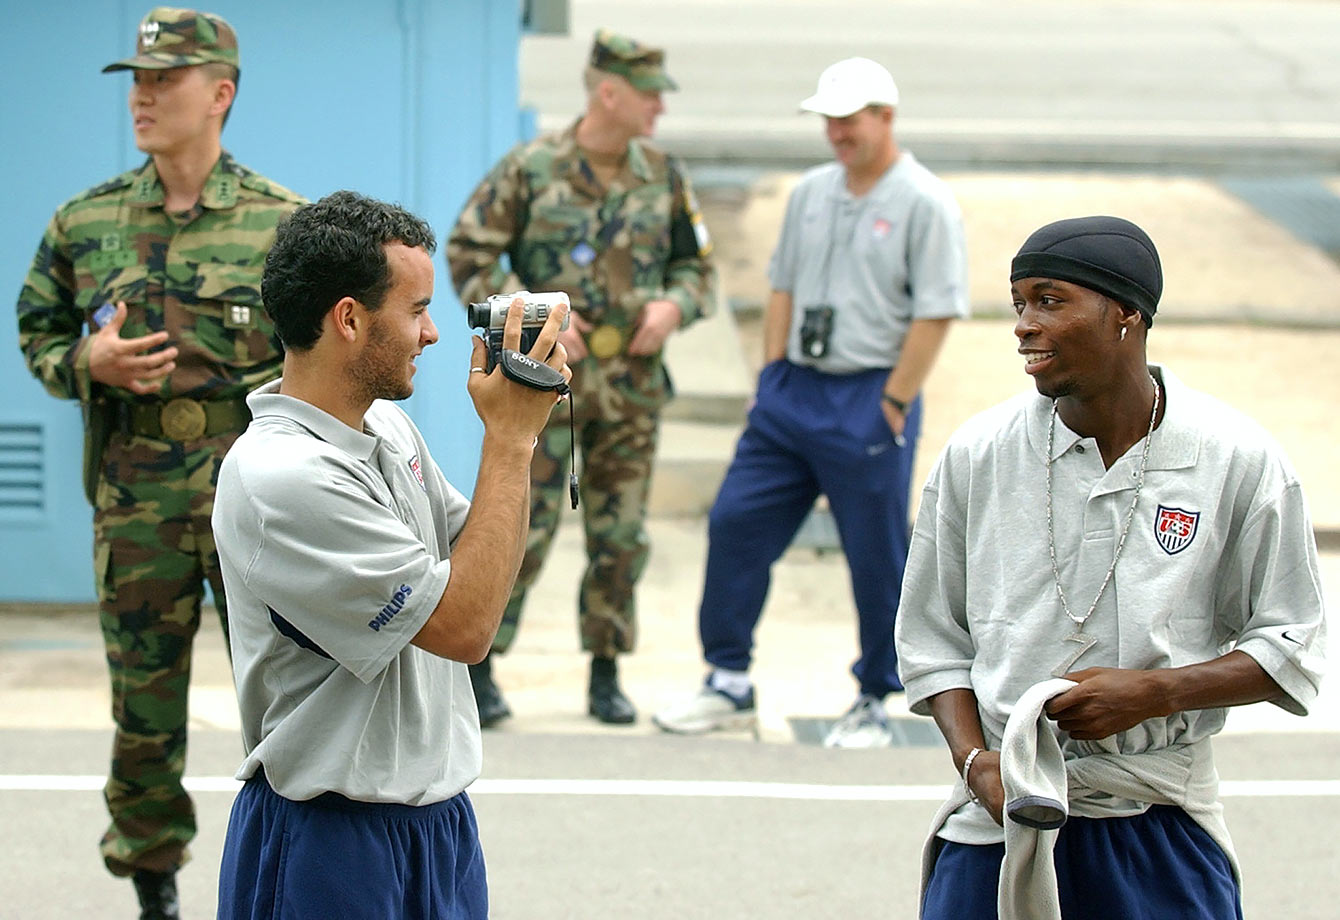 Landon Donovan records teammate DaMarcus Beasley during the national team's visit to the demilitarized zone. The U.S. soccer squad faced Portugal, South Korea and Poland in the first round of the 2002 FIFA Korea-Japan World Cup.